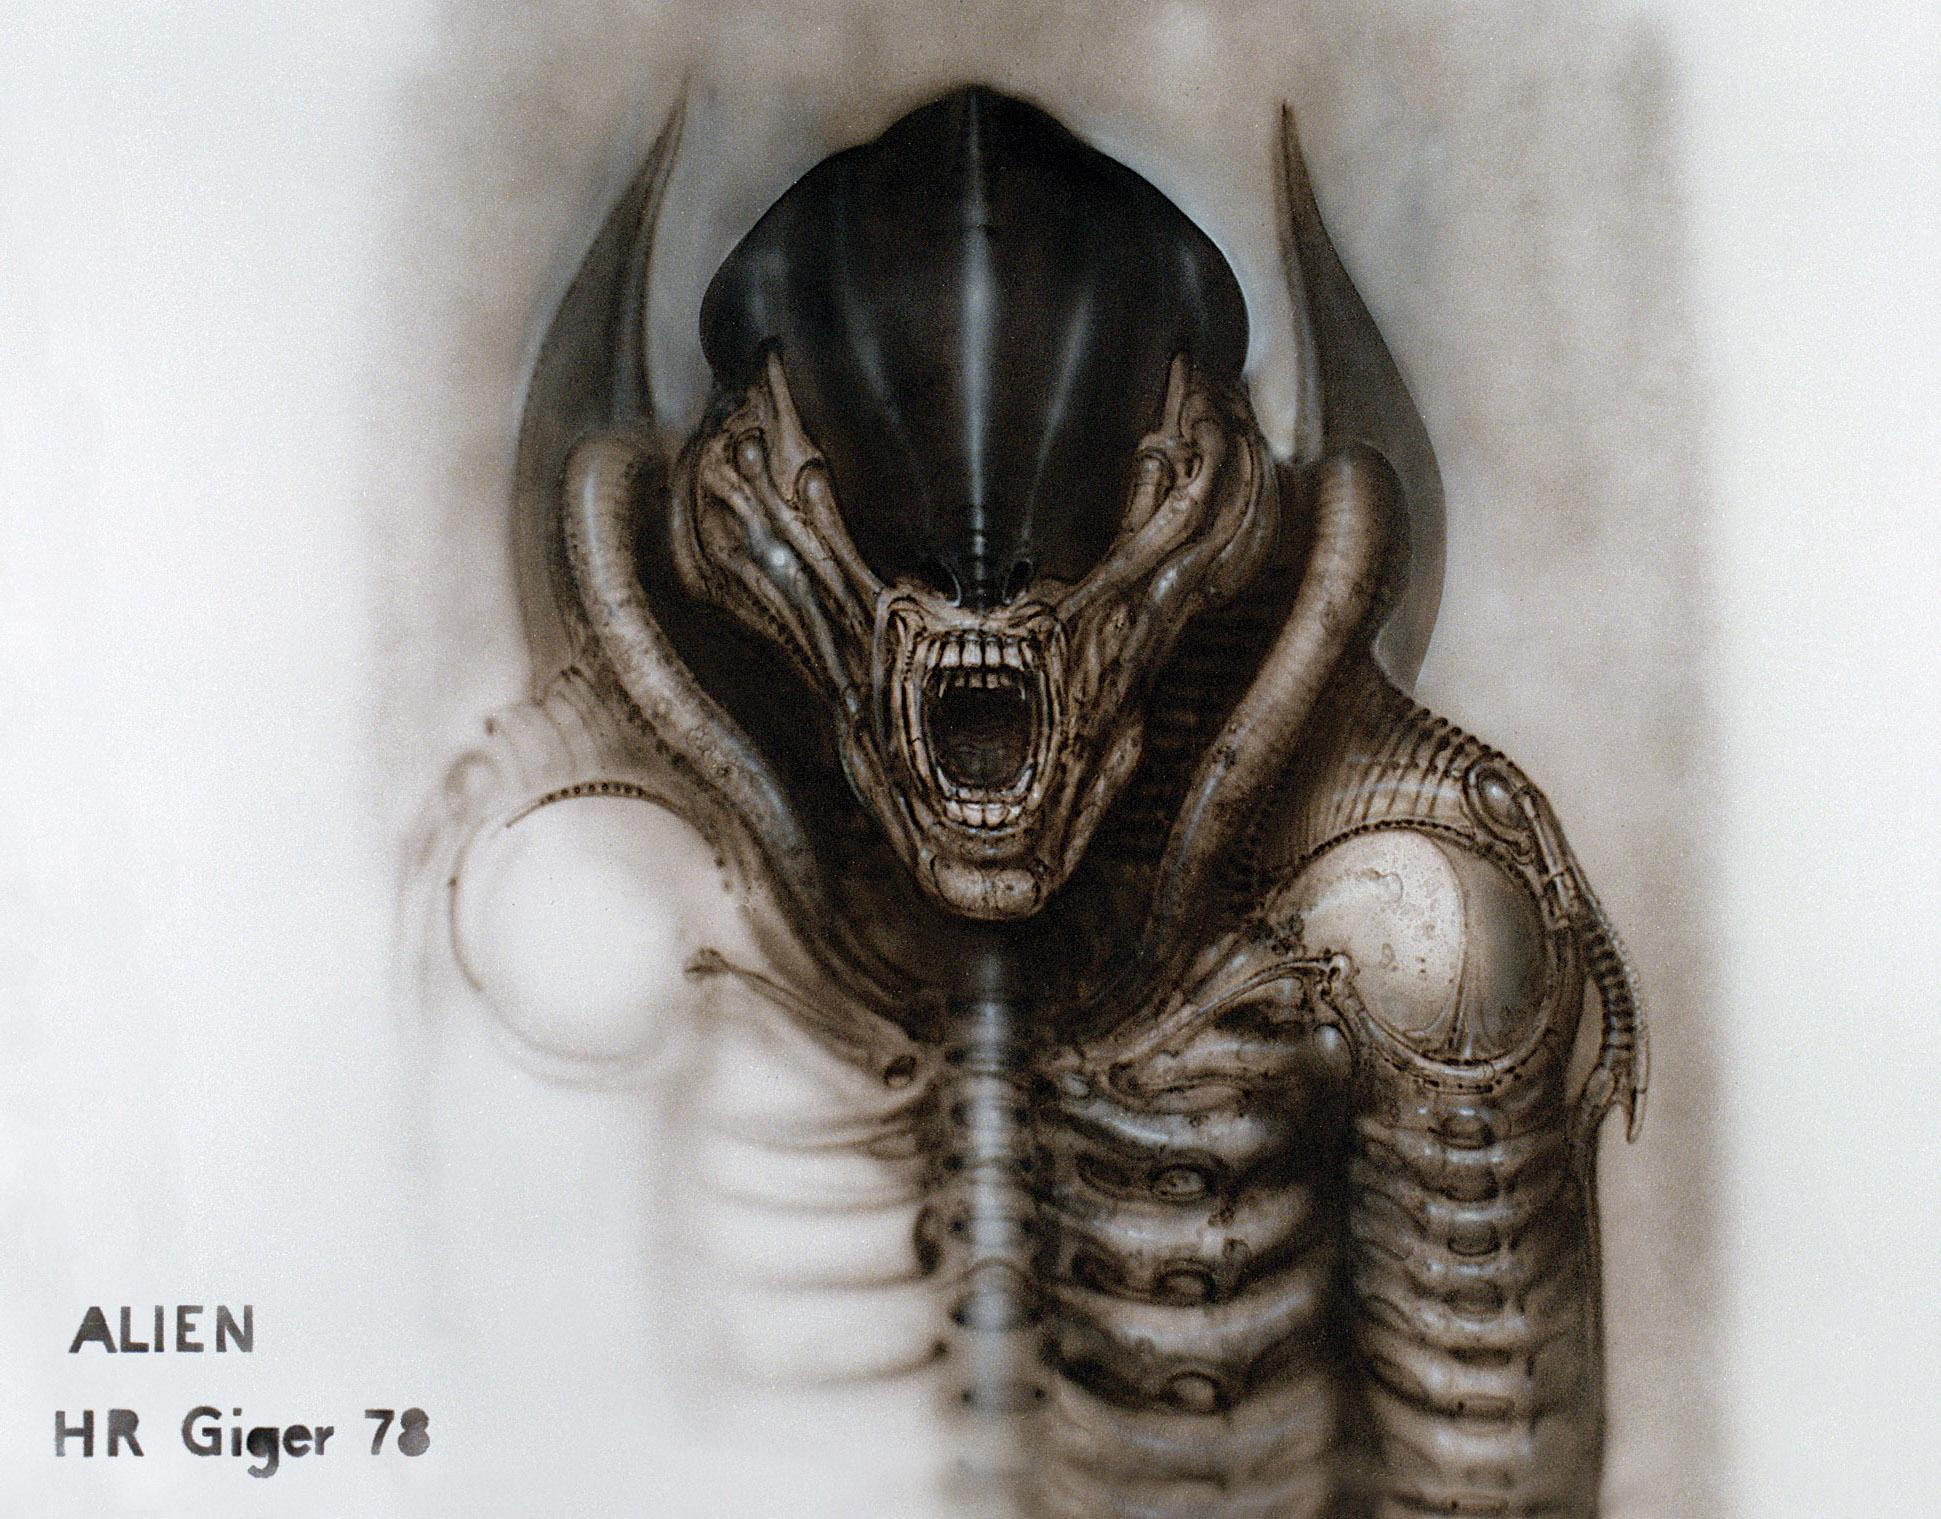 hr giger�s original paintings for alien will haunt your